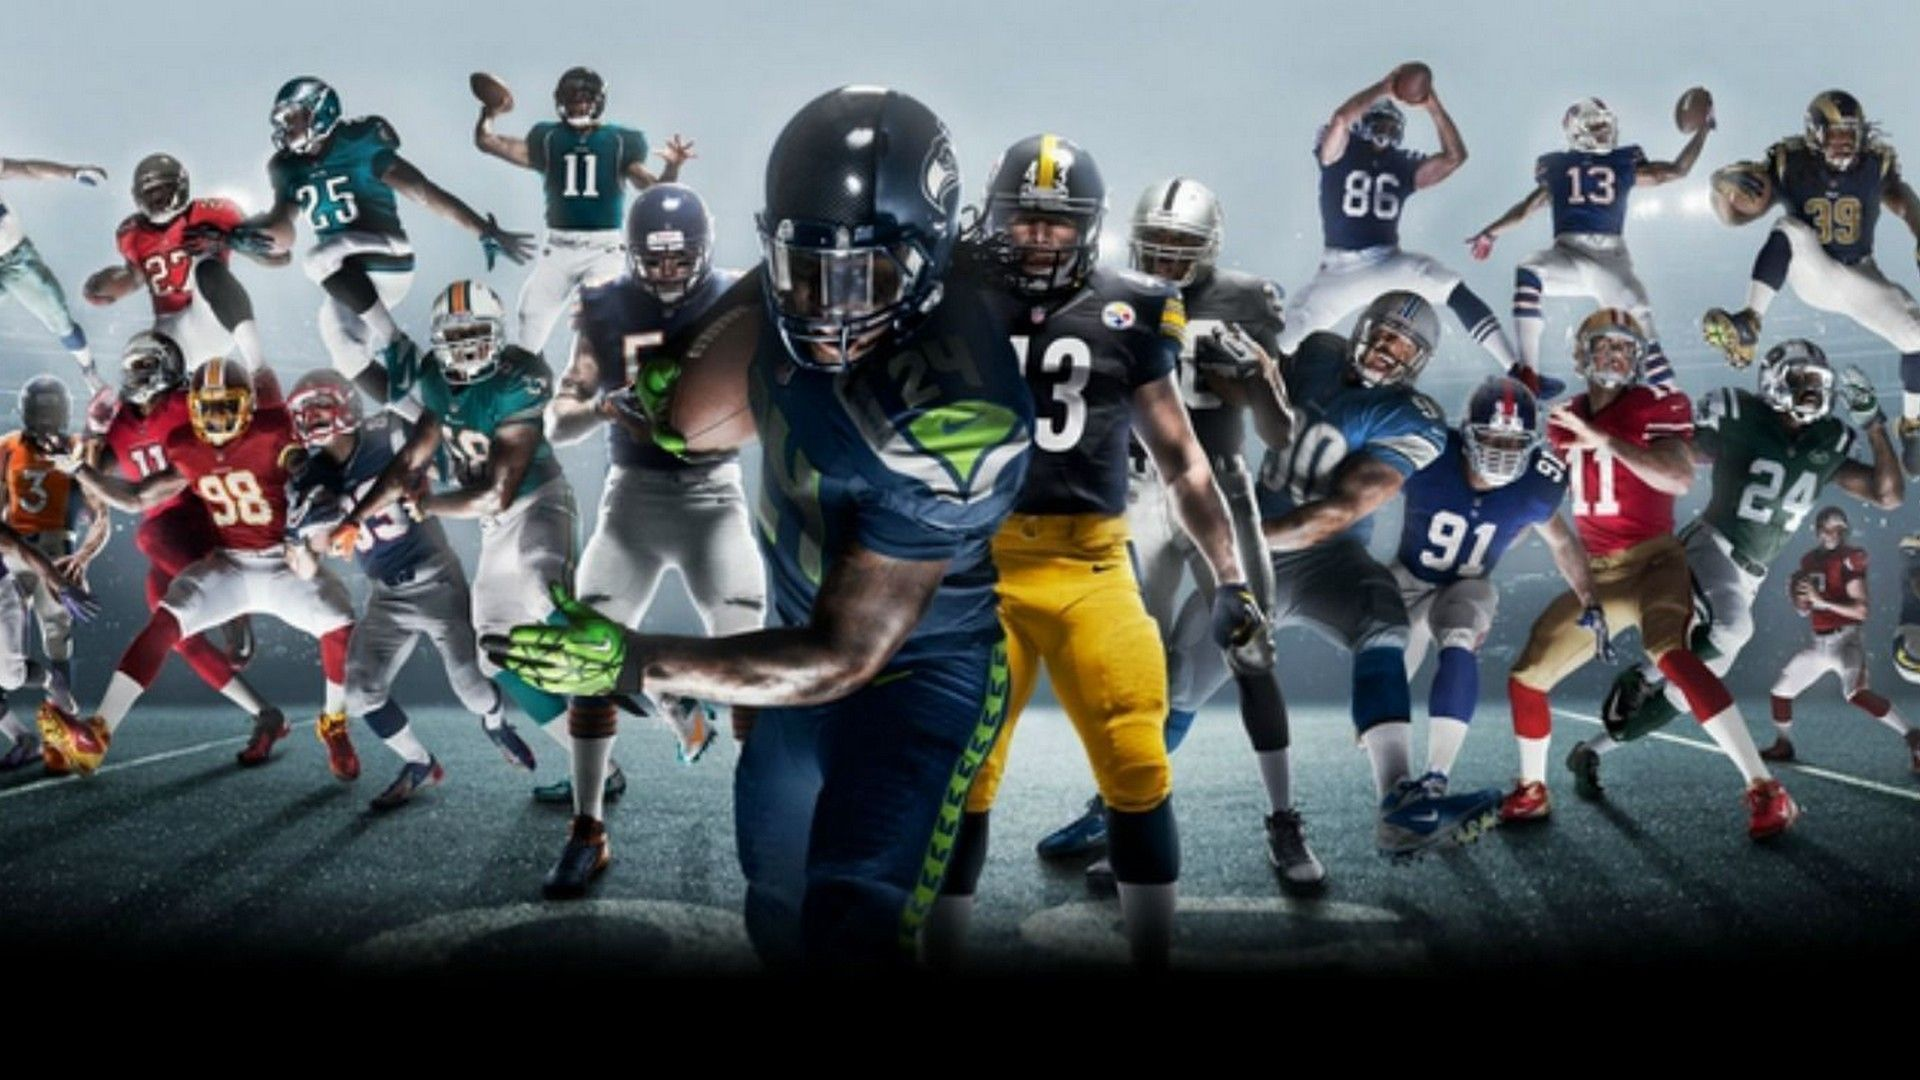 Cool Football Wallpapers   Top Cool Football Backgrounds 1920x1080